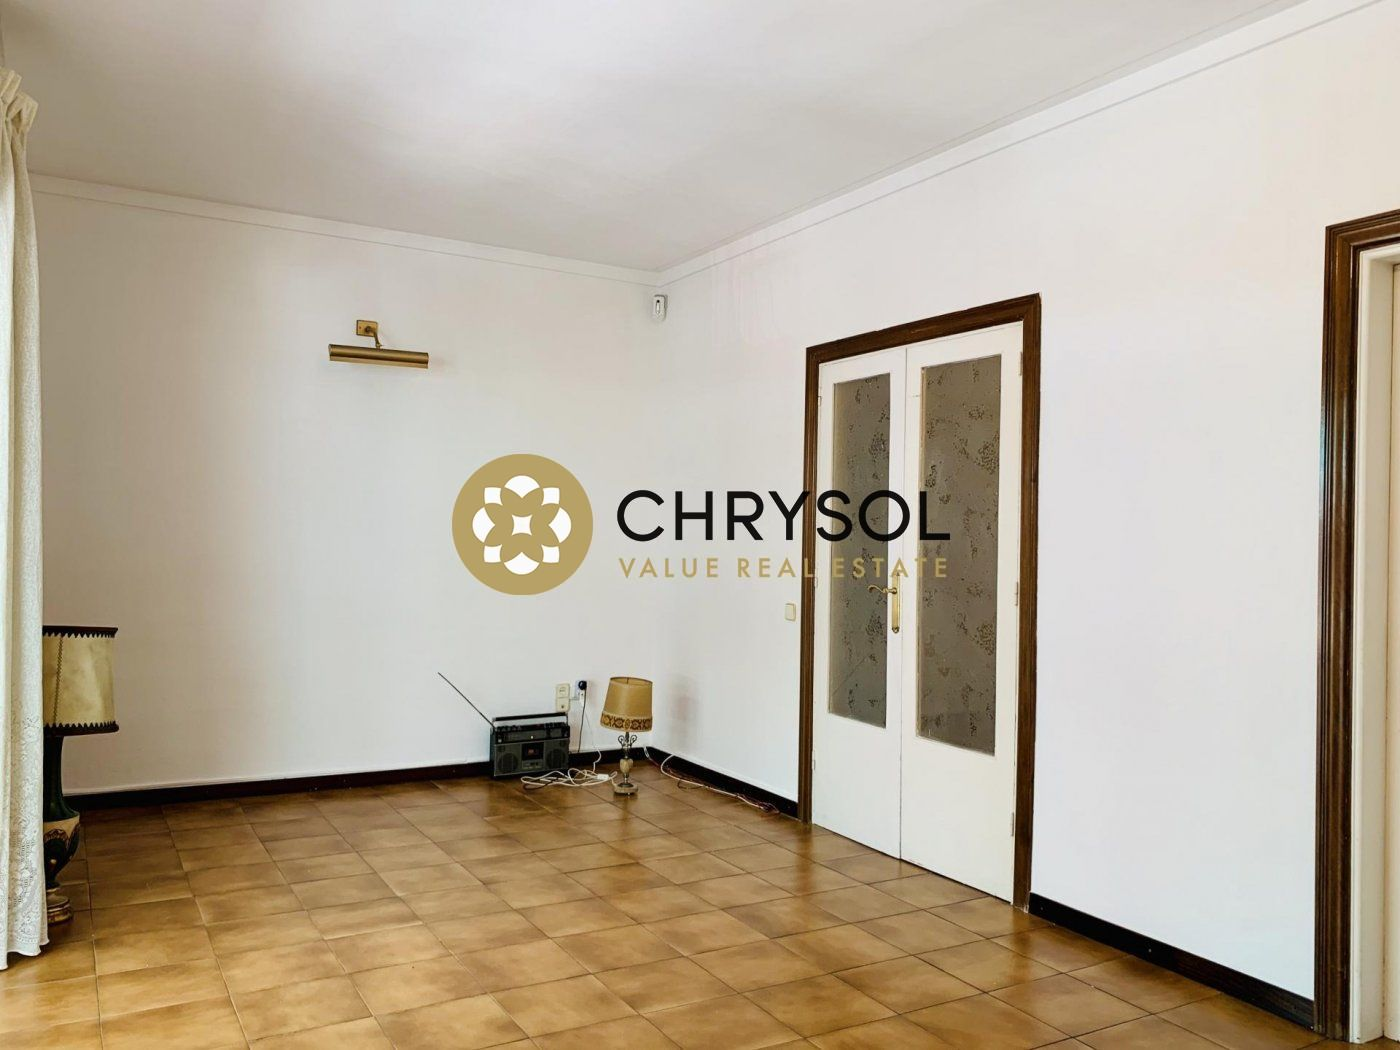 Photogallery - 3 - Chrysol Value